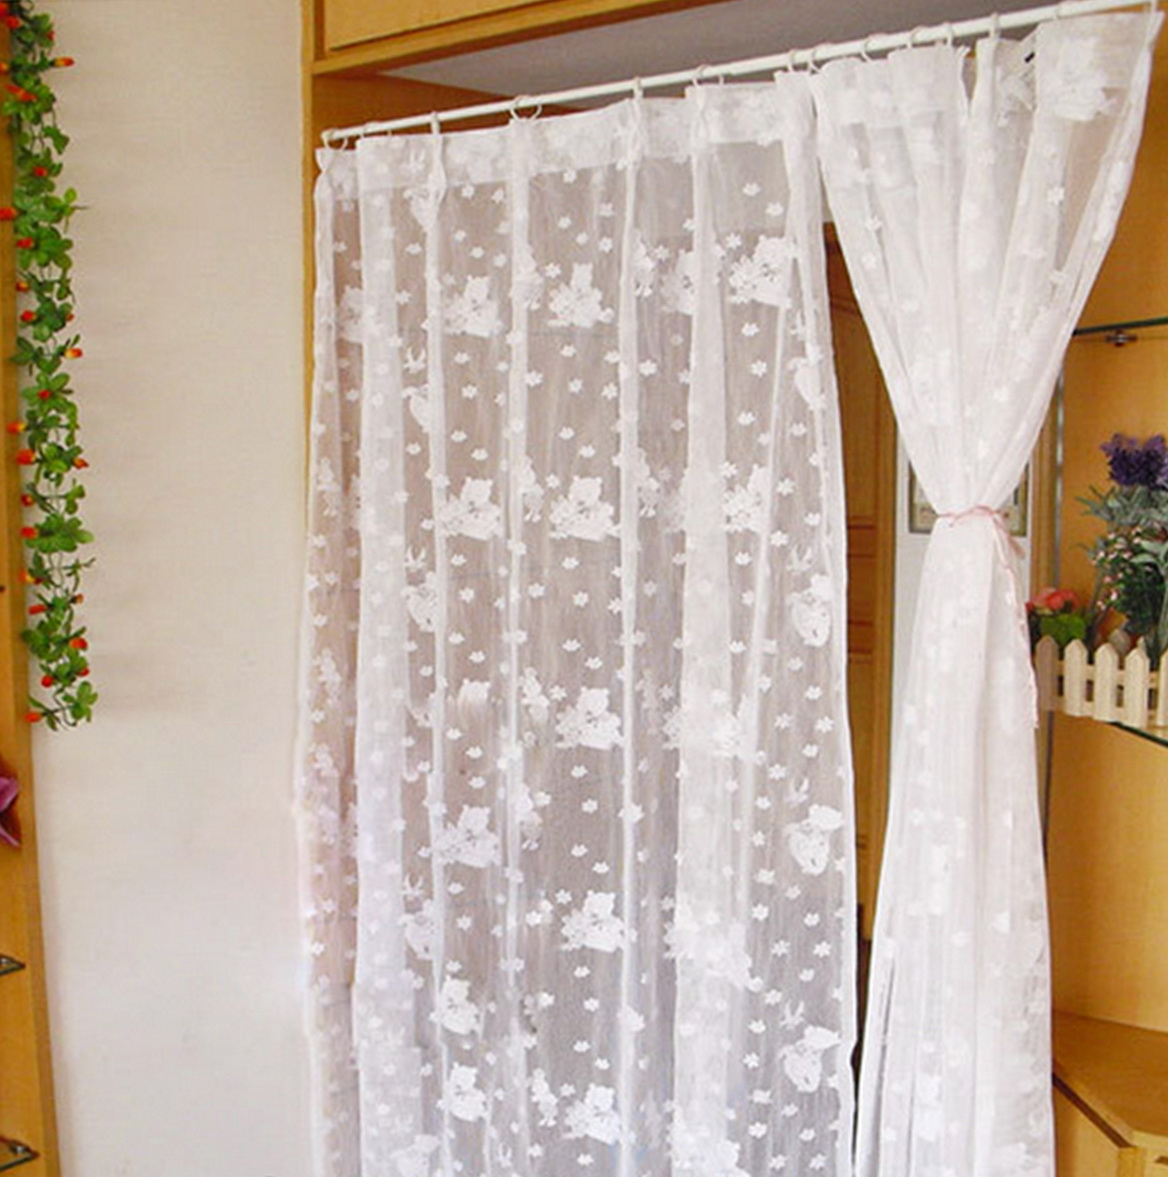 Spring Tension Curtain Rods Lowes